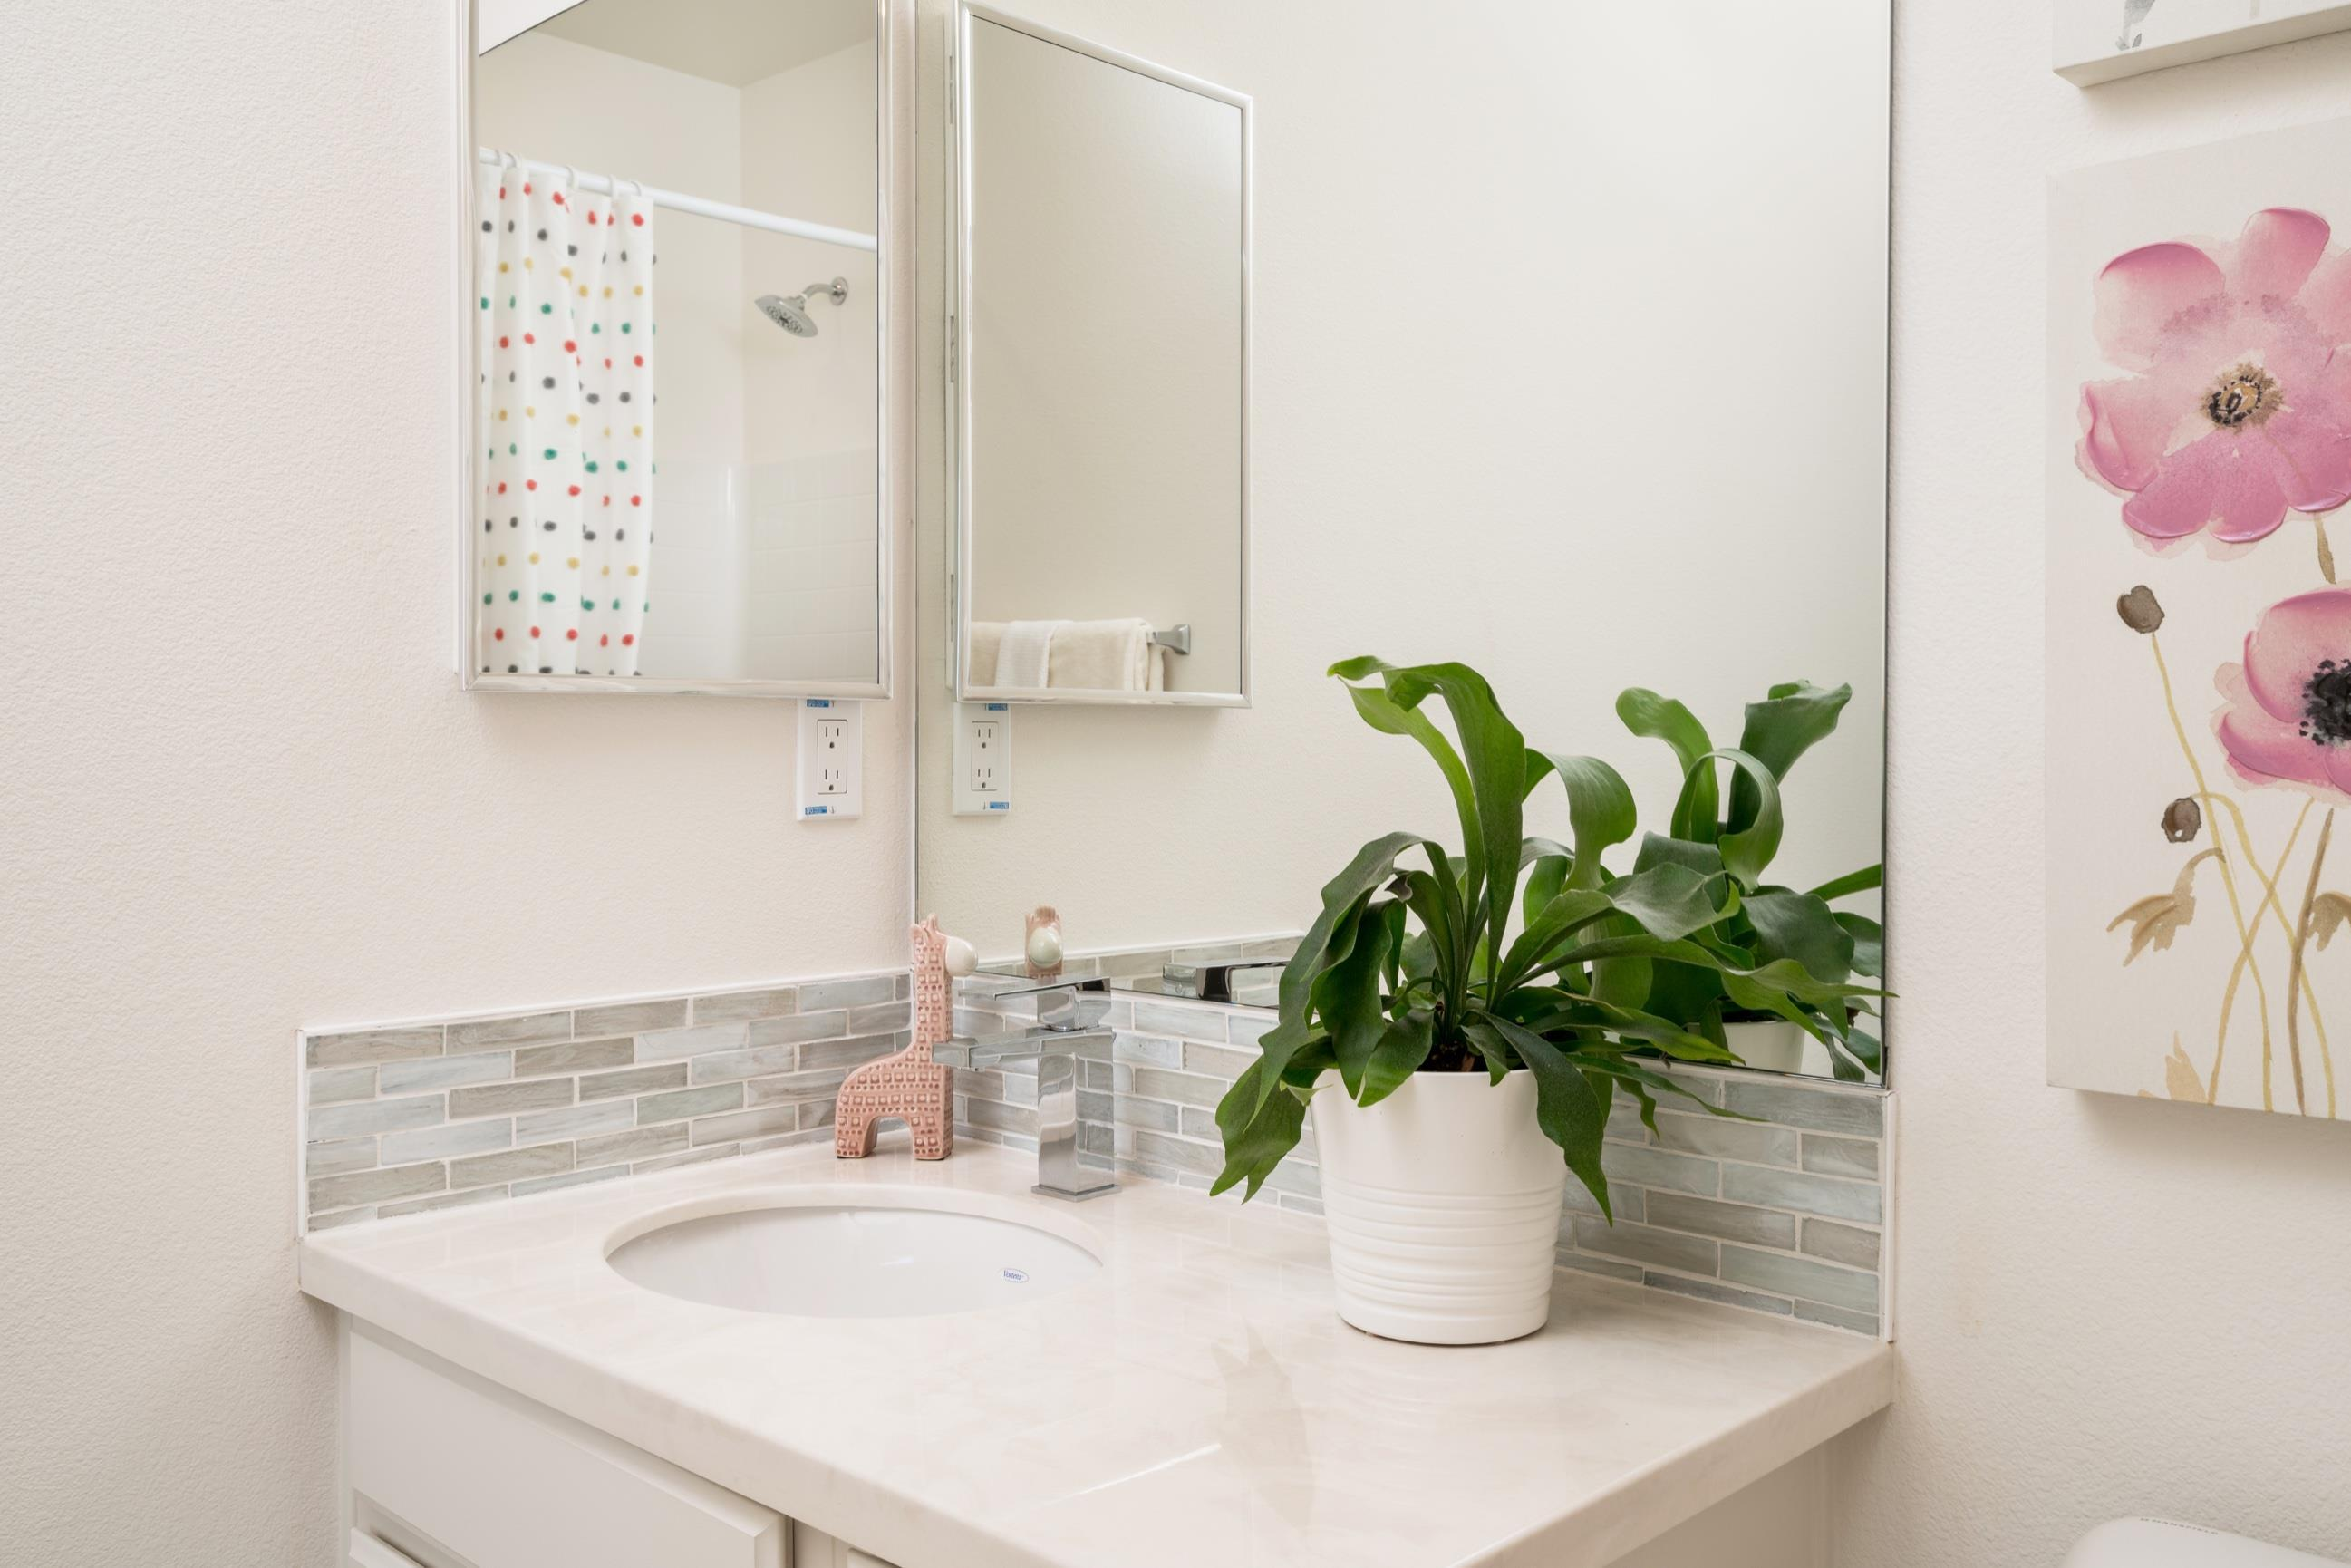 Bathroom featured in the Plan 3 By Heritage Building & Dev't in San Diego, CA